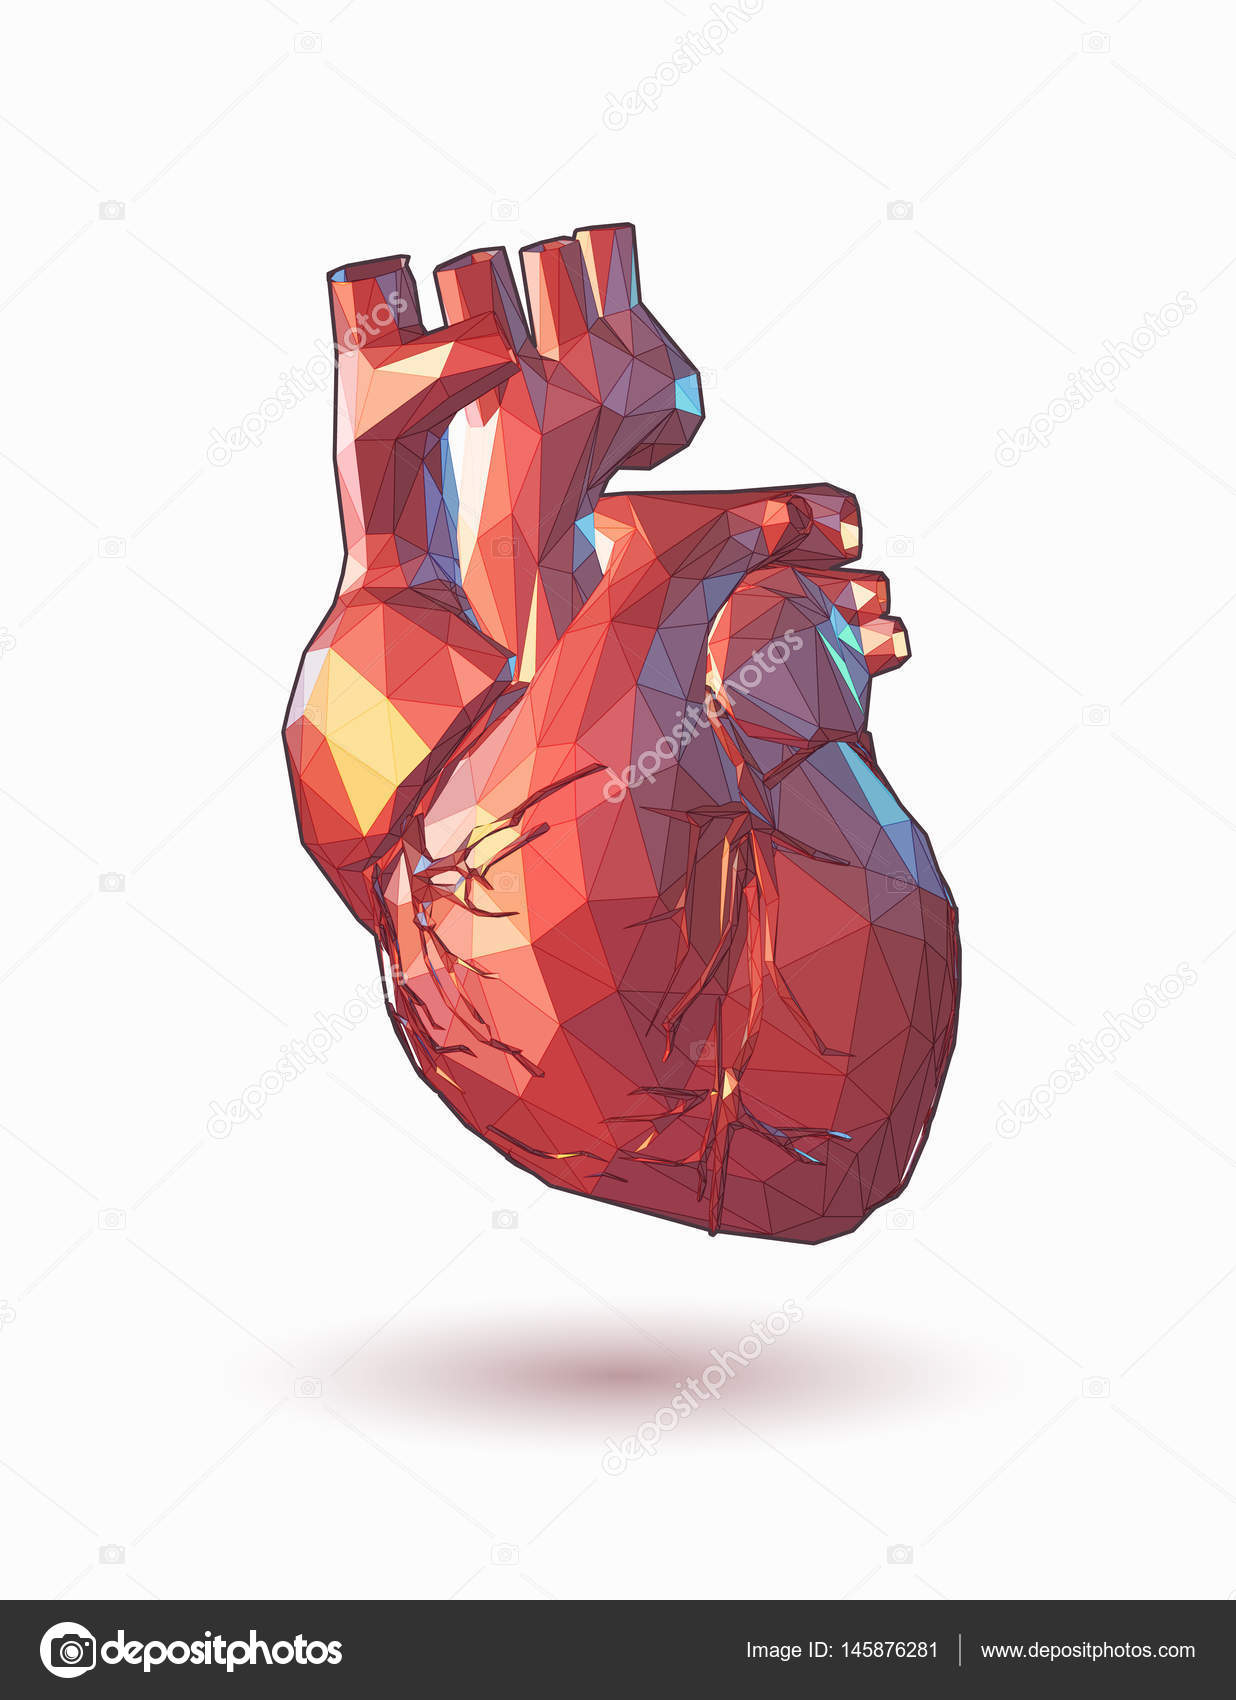 Low poly human heart illustration stock vector jolygon 145876281 colorful low poly human heart graphic illustration on white background vector by jolygon ccuart Choice Image